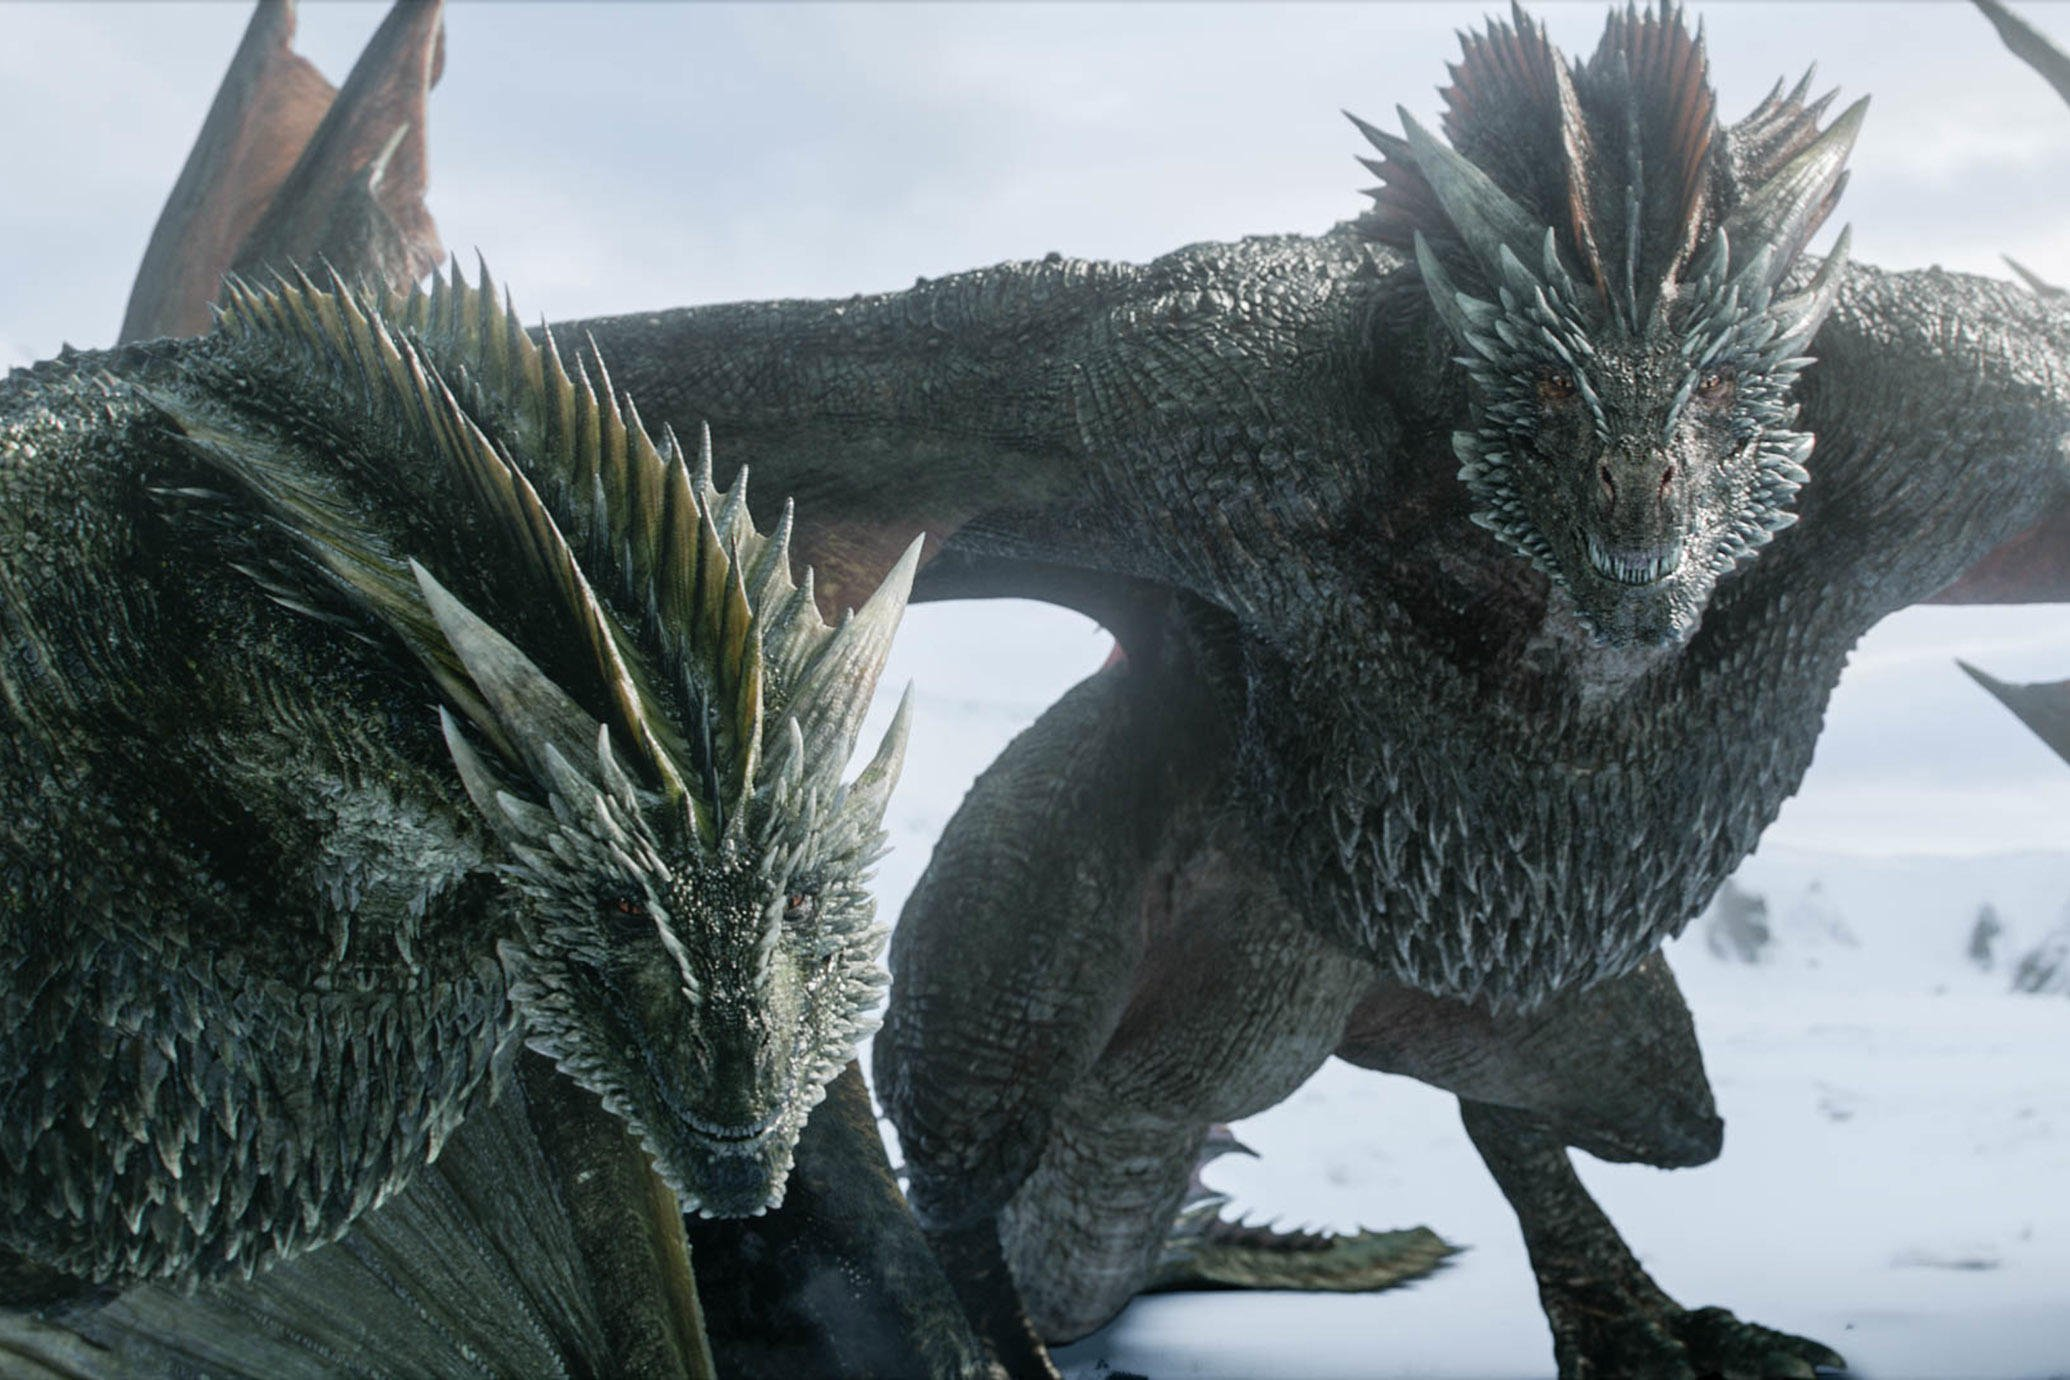 Game of Thrones Season 8 Episode 4 Trailer Confirms Rhaegal Is Alive and Well